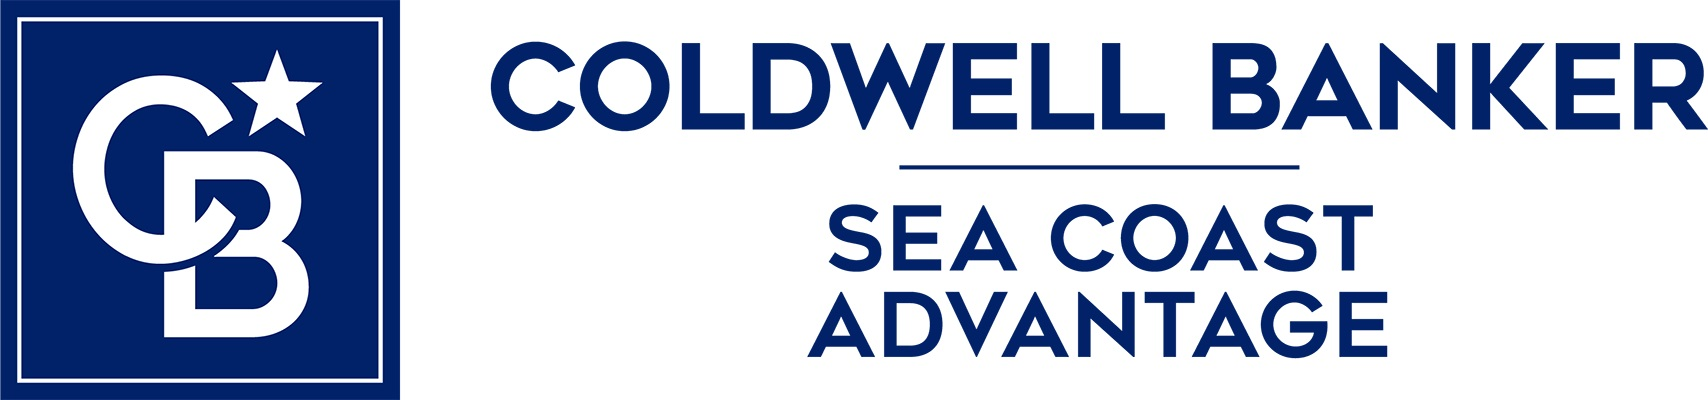 Chris Santucci - Coldwell Banker Sea Coast Advantage Realty